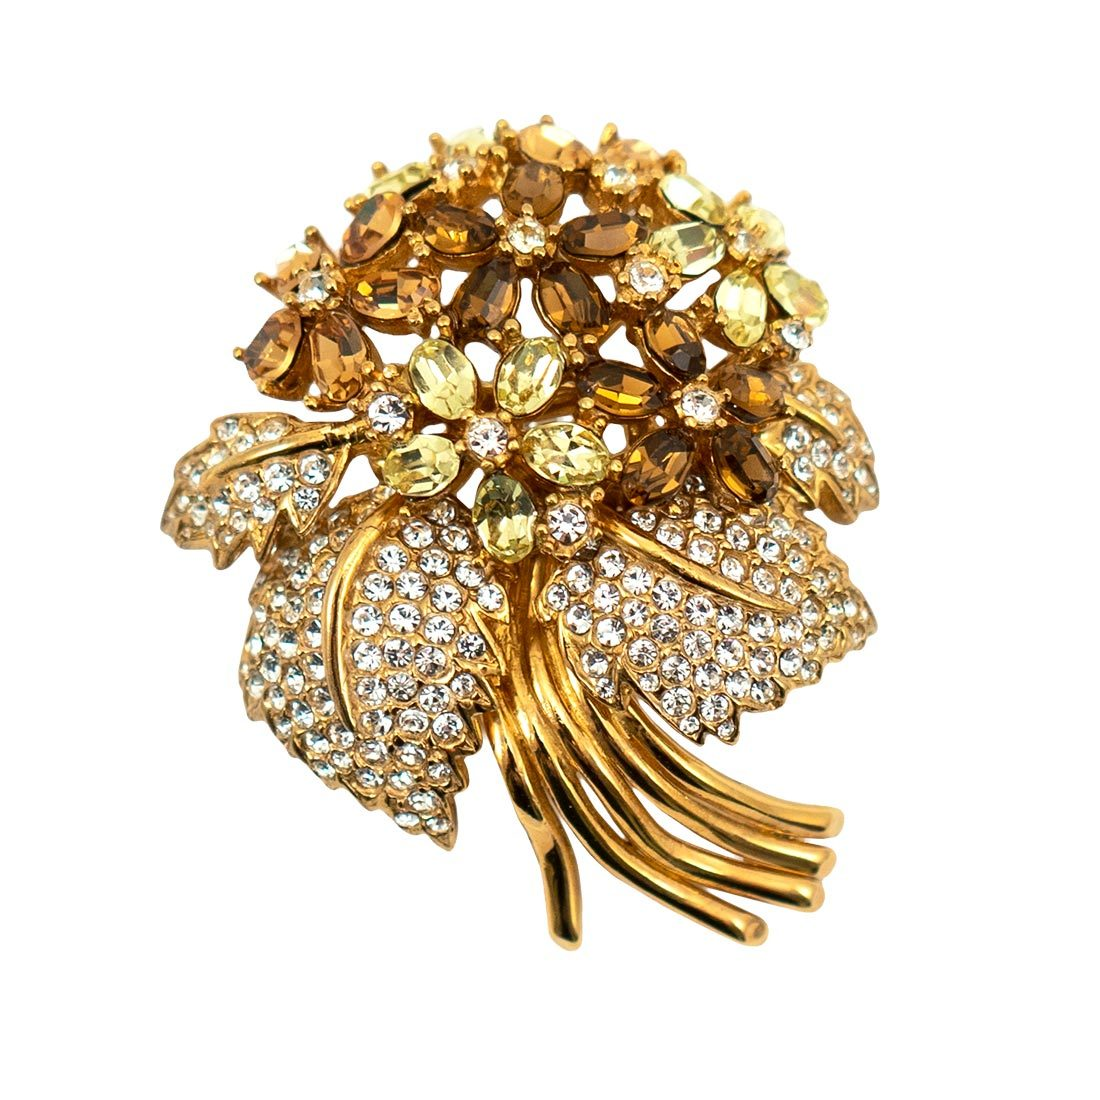 Crystal Encrusted Flower Brooch